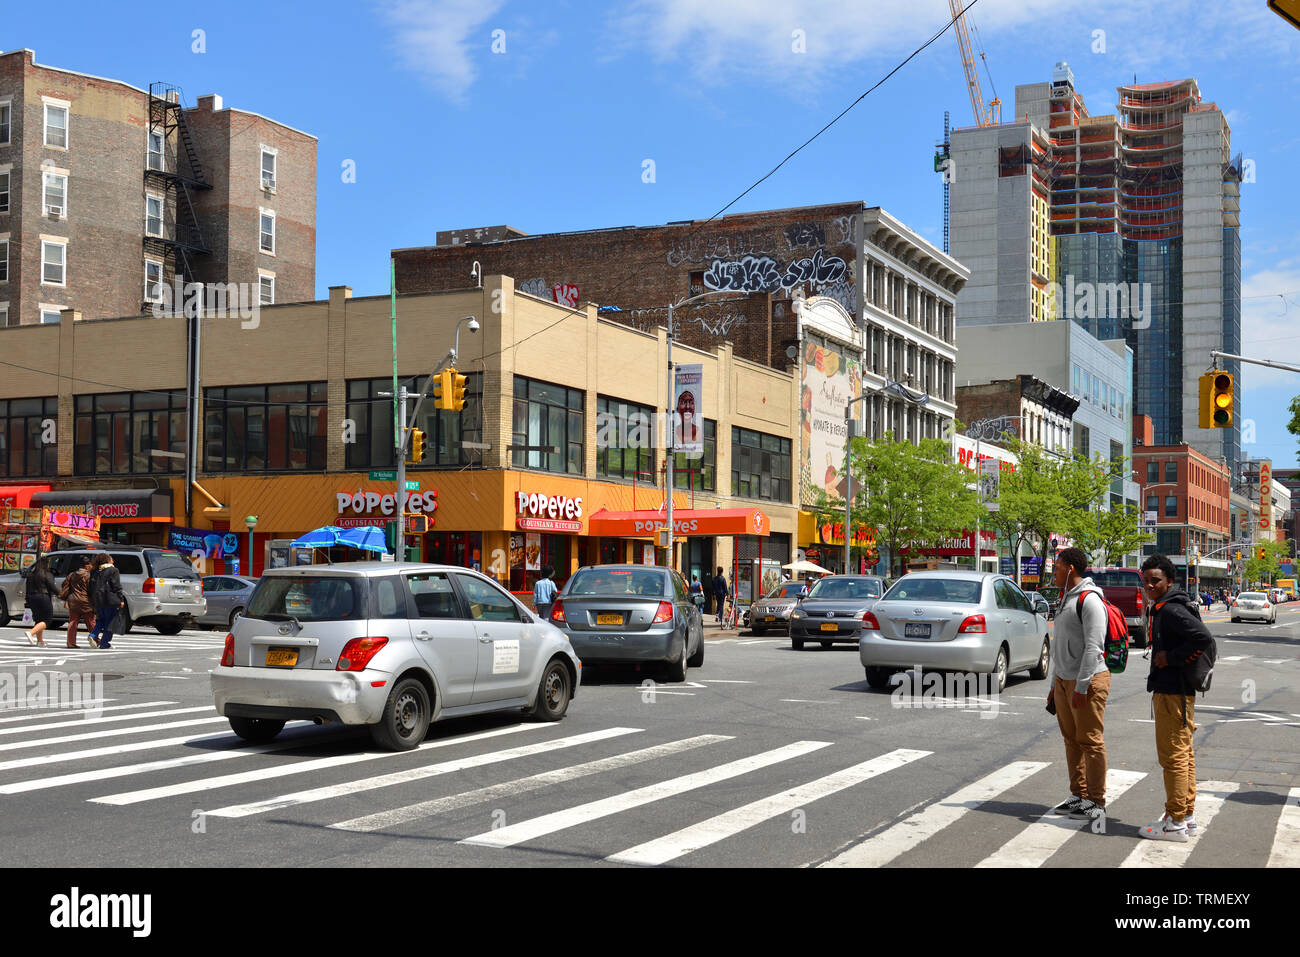 125th Street, often considered to be 'Main Street' of Harlem, and co-named Martin Luther King Jr. Boulevard - Stock Image